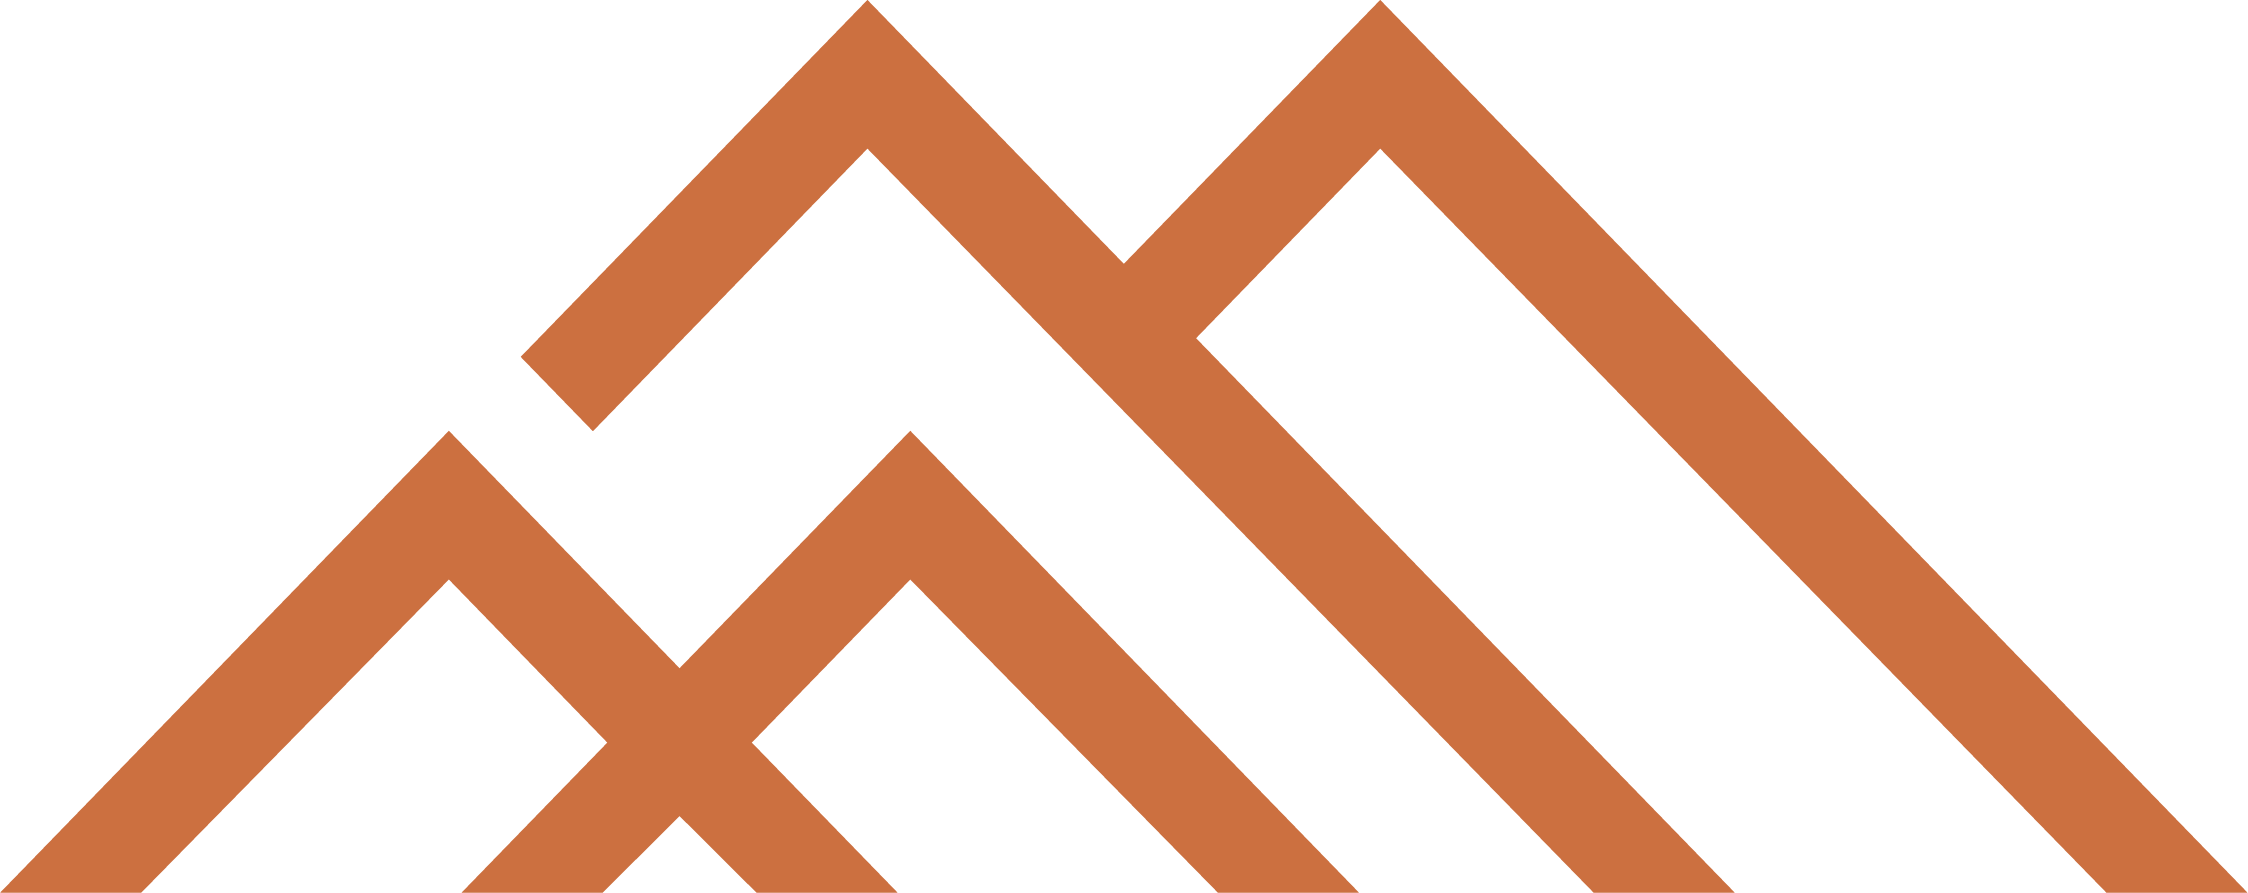 Orange Symbol Logo Vector.png